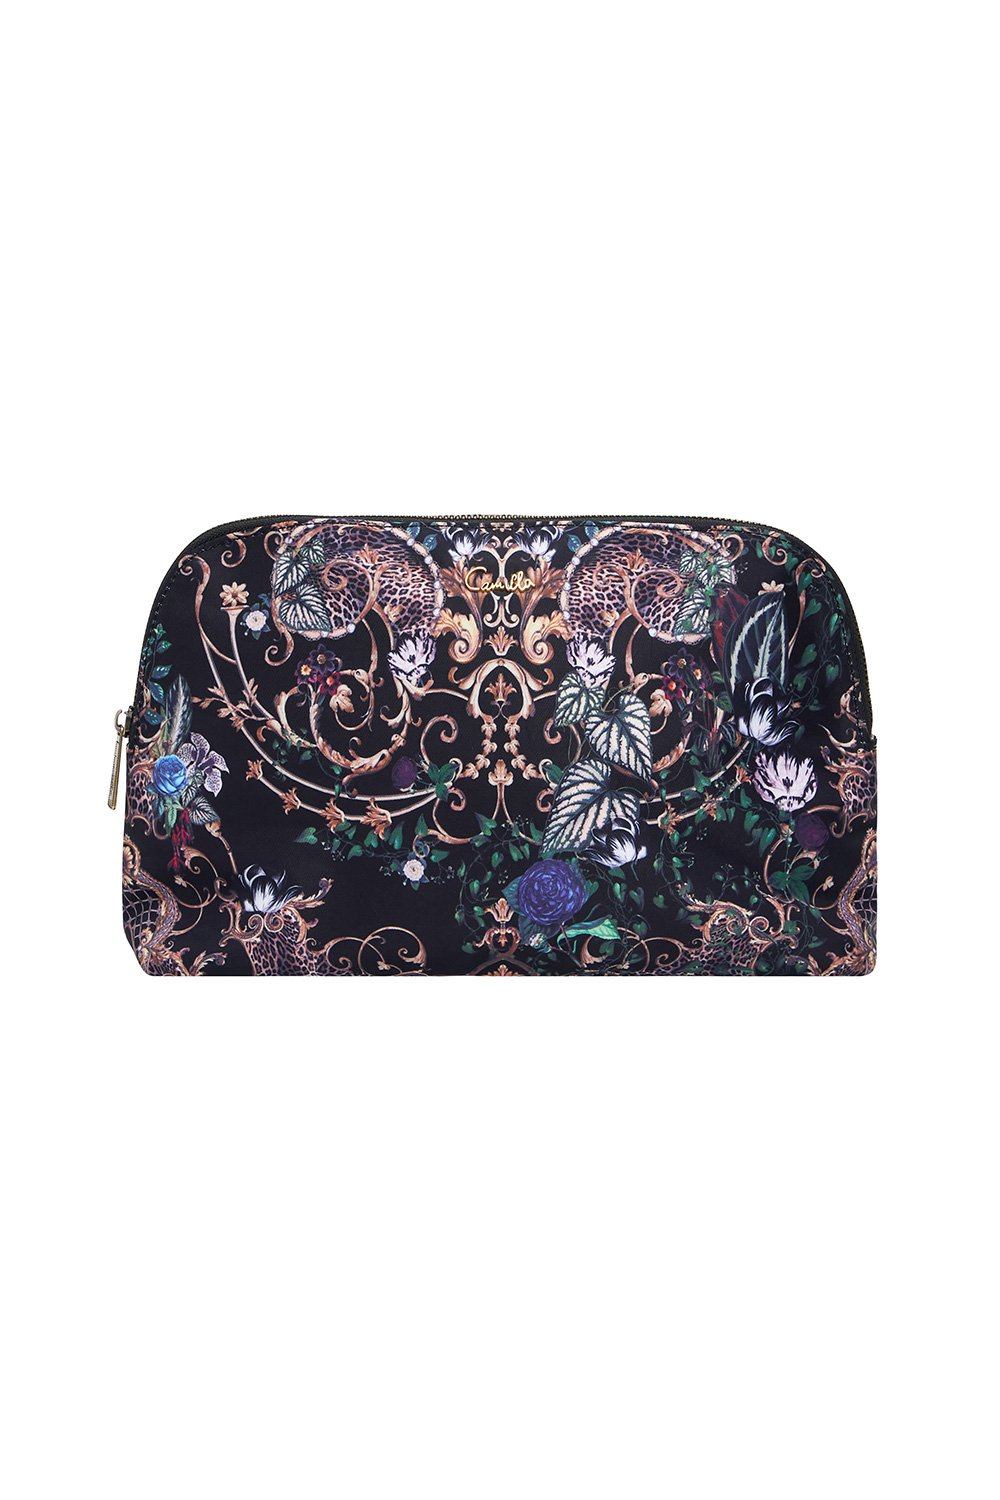 LARGE  COSMETIC CASE STUDIO 54